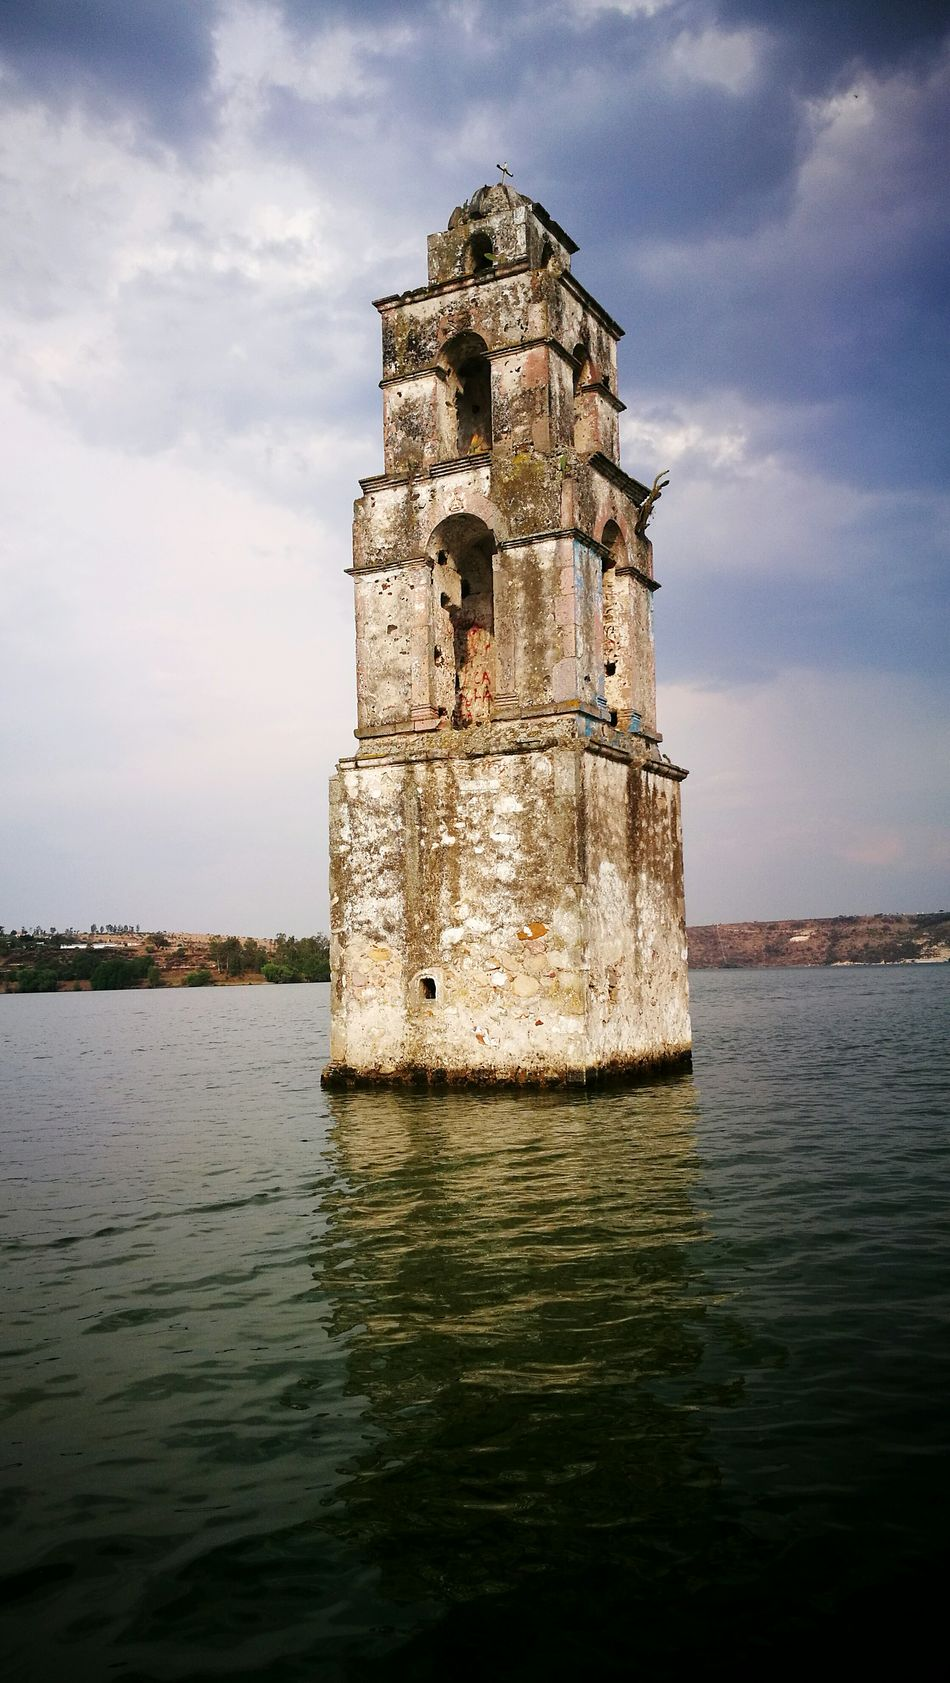 History Water Architecture No People Cloud - Sky Built Structure Sea Outdoors Sky Day Underwater Building Exterior Nature Clock Iglesia Torre Inundations Campanario Bell Tower Inundado Tower Mexico Church Tower Church